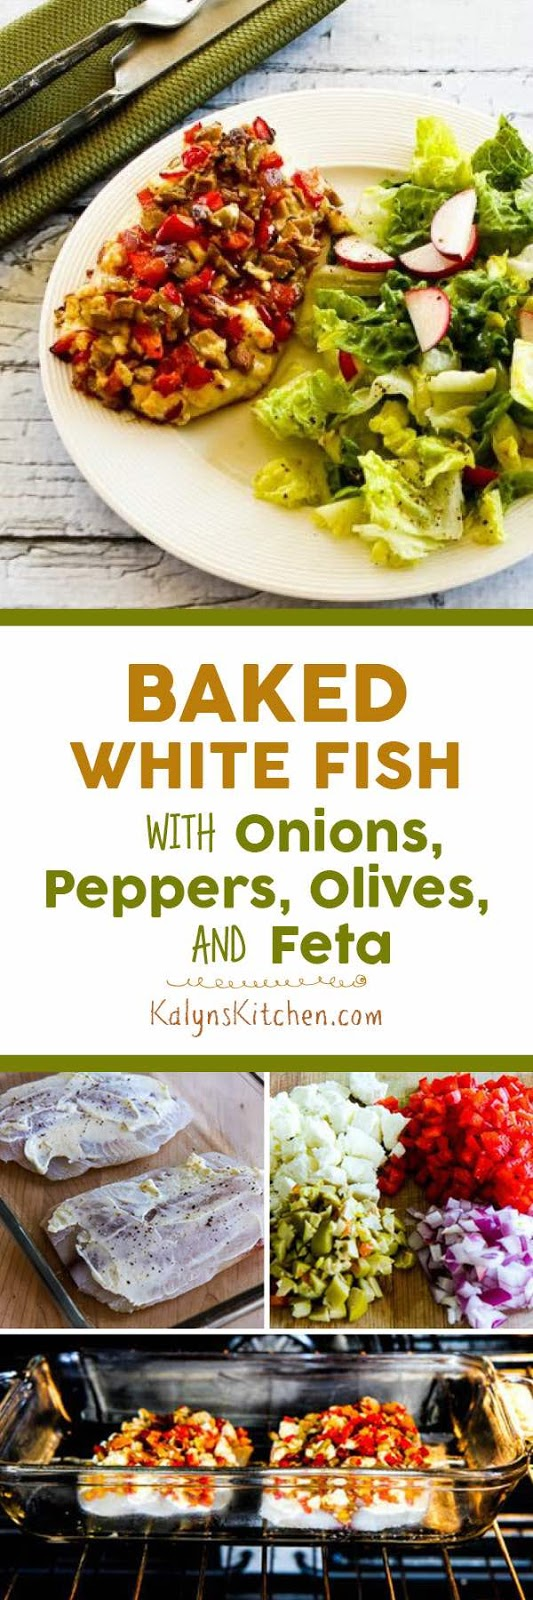 Baked White Fish with Onions, Peppers, Olives, and Feta ...